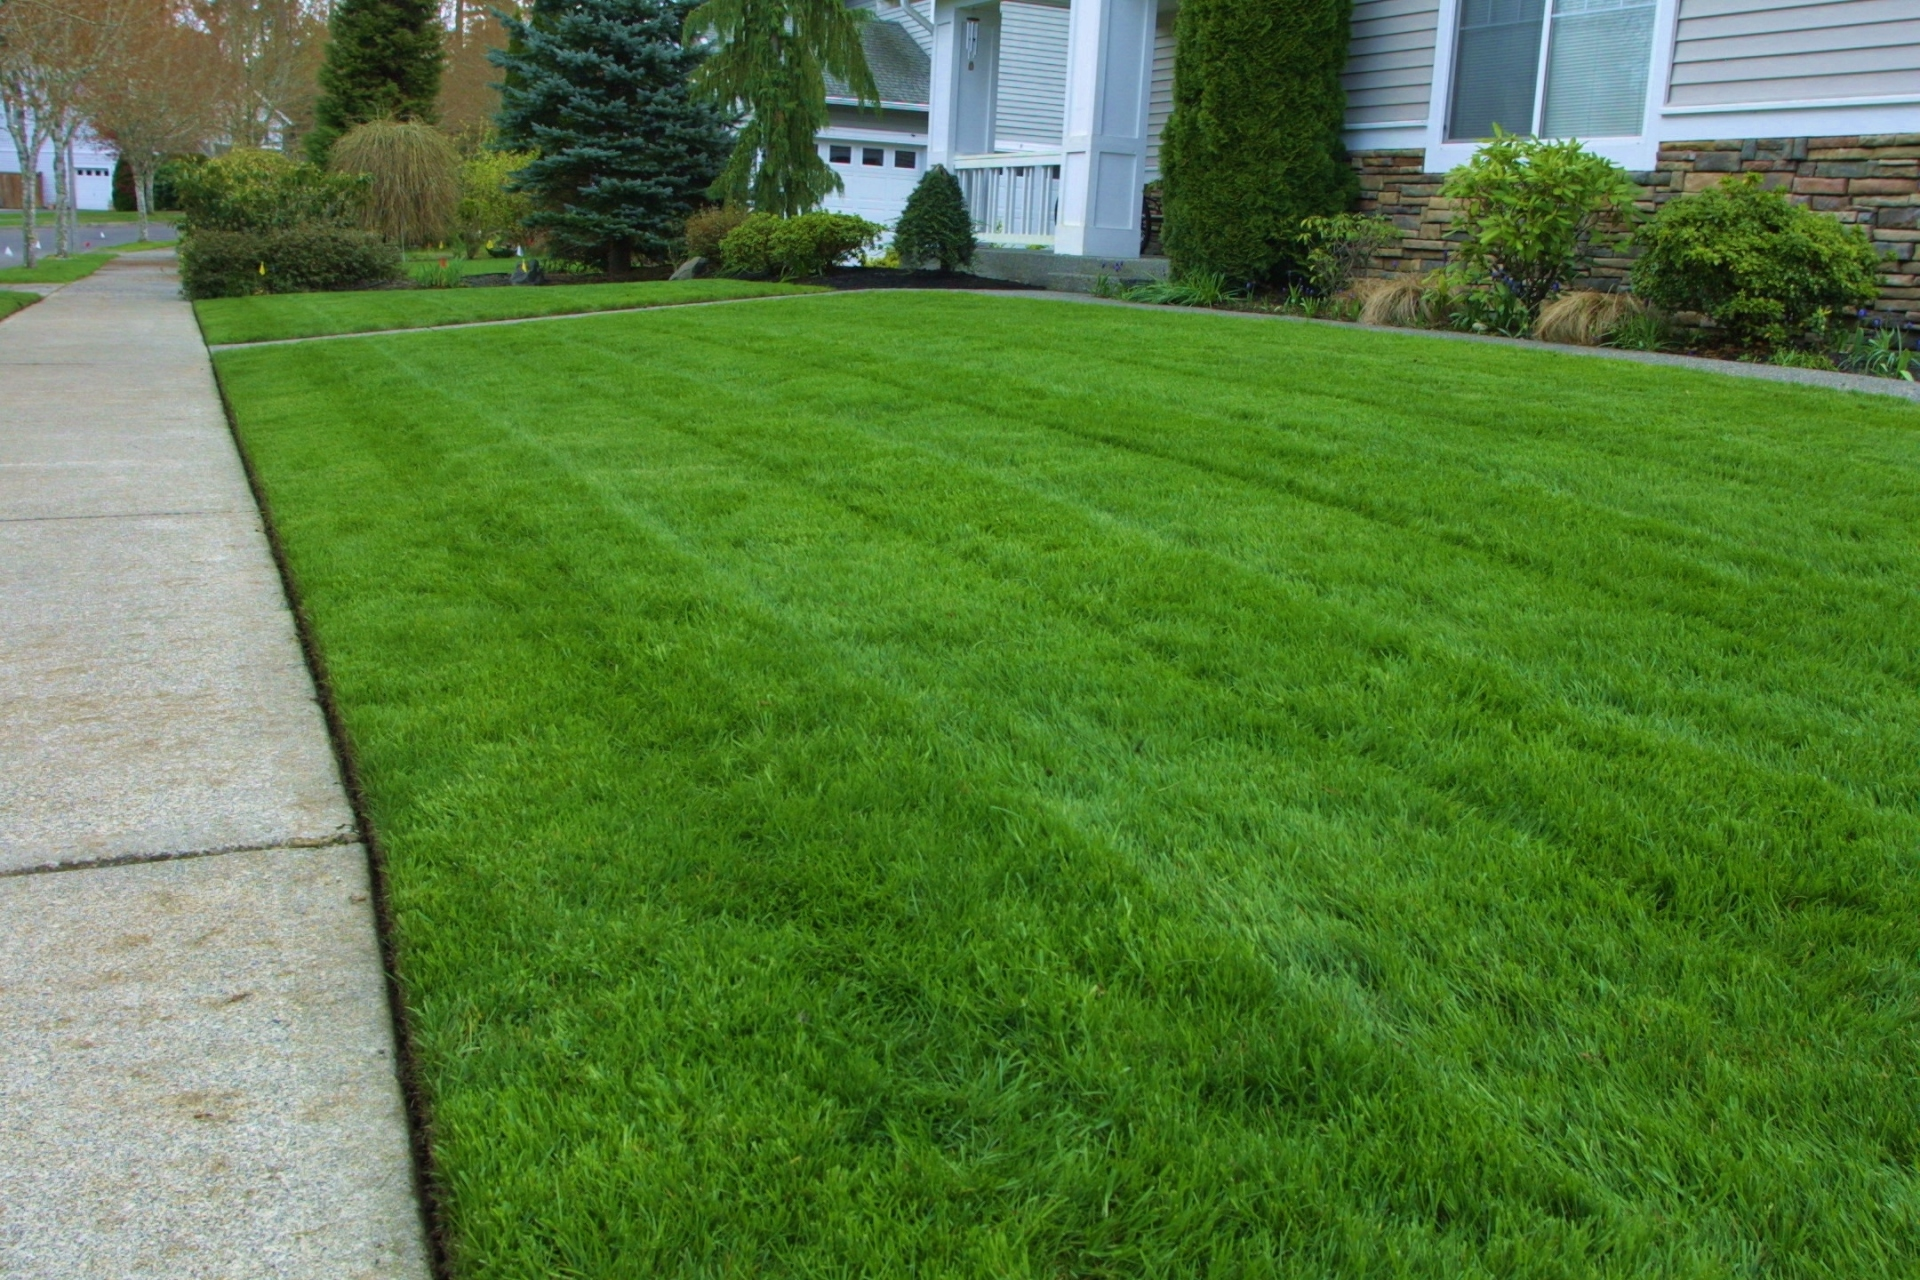 Lawn for Professional landscaping service